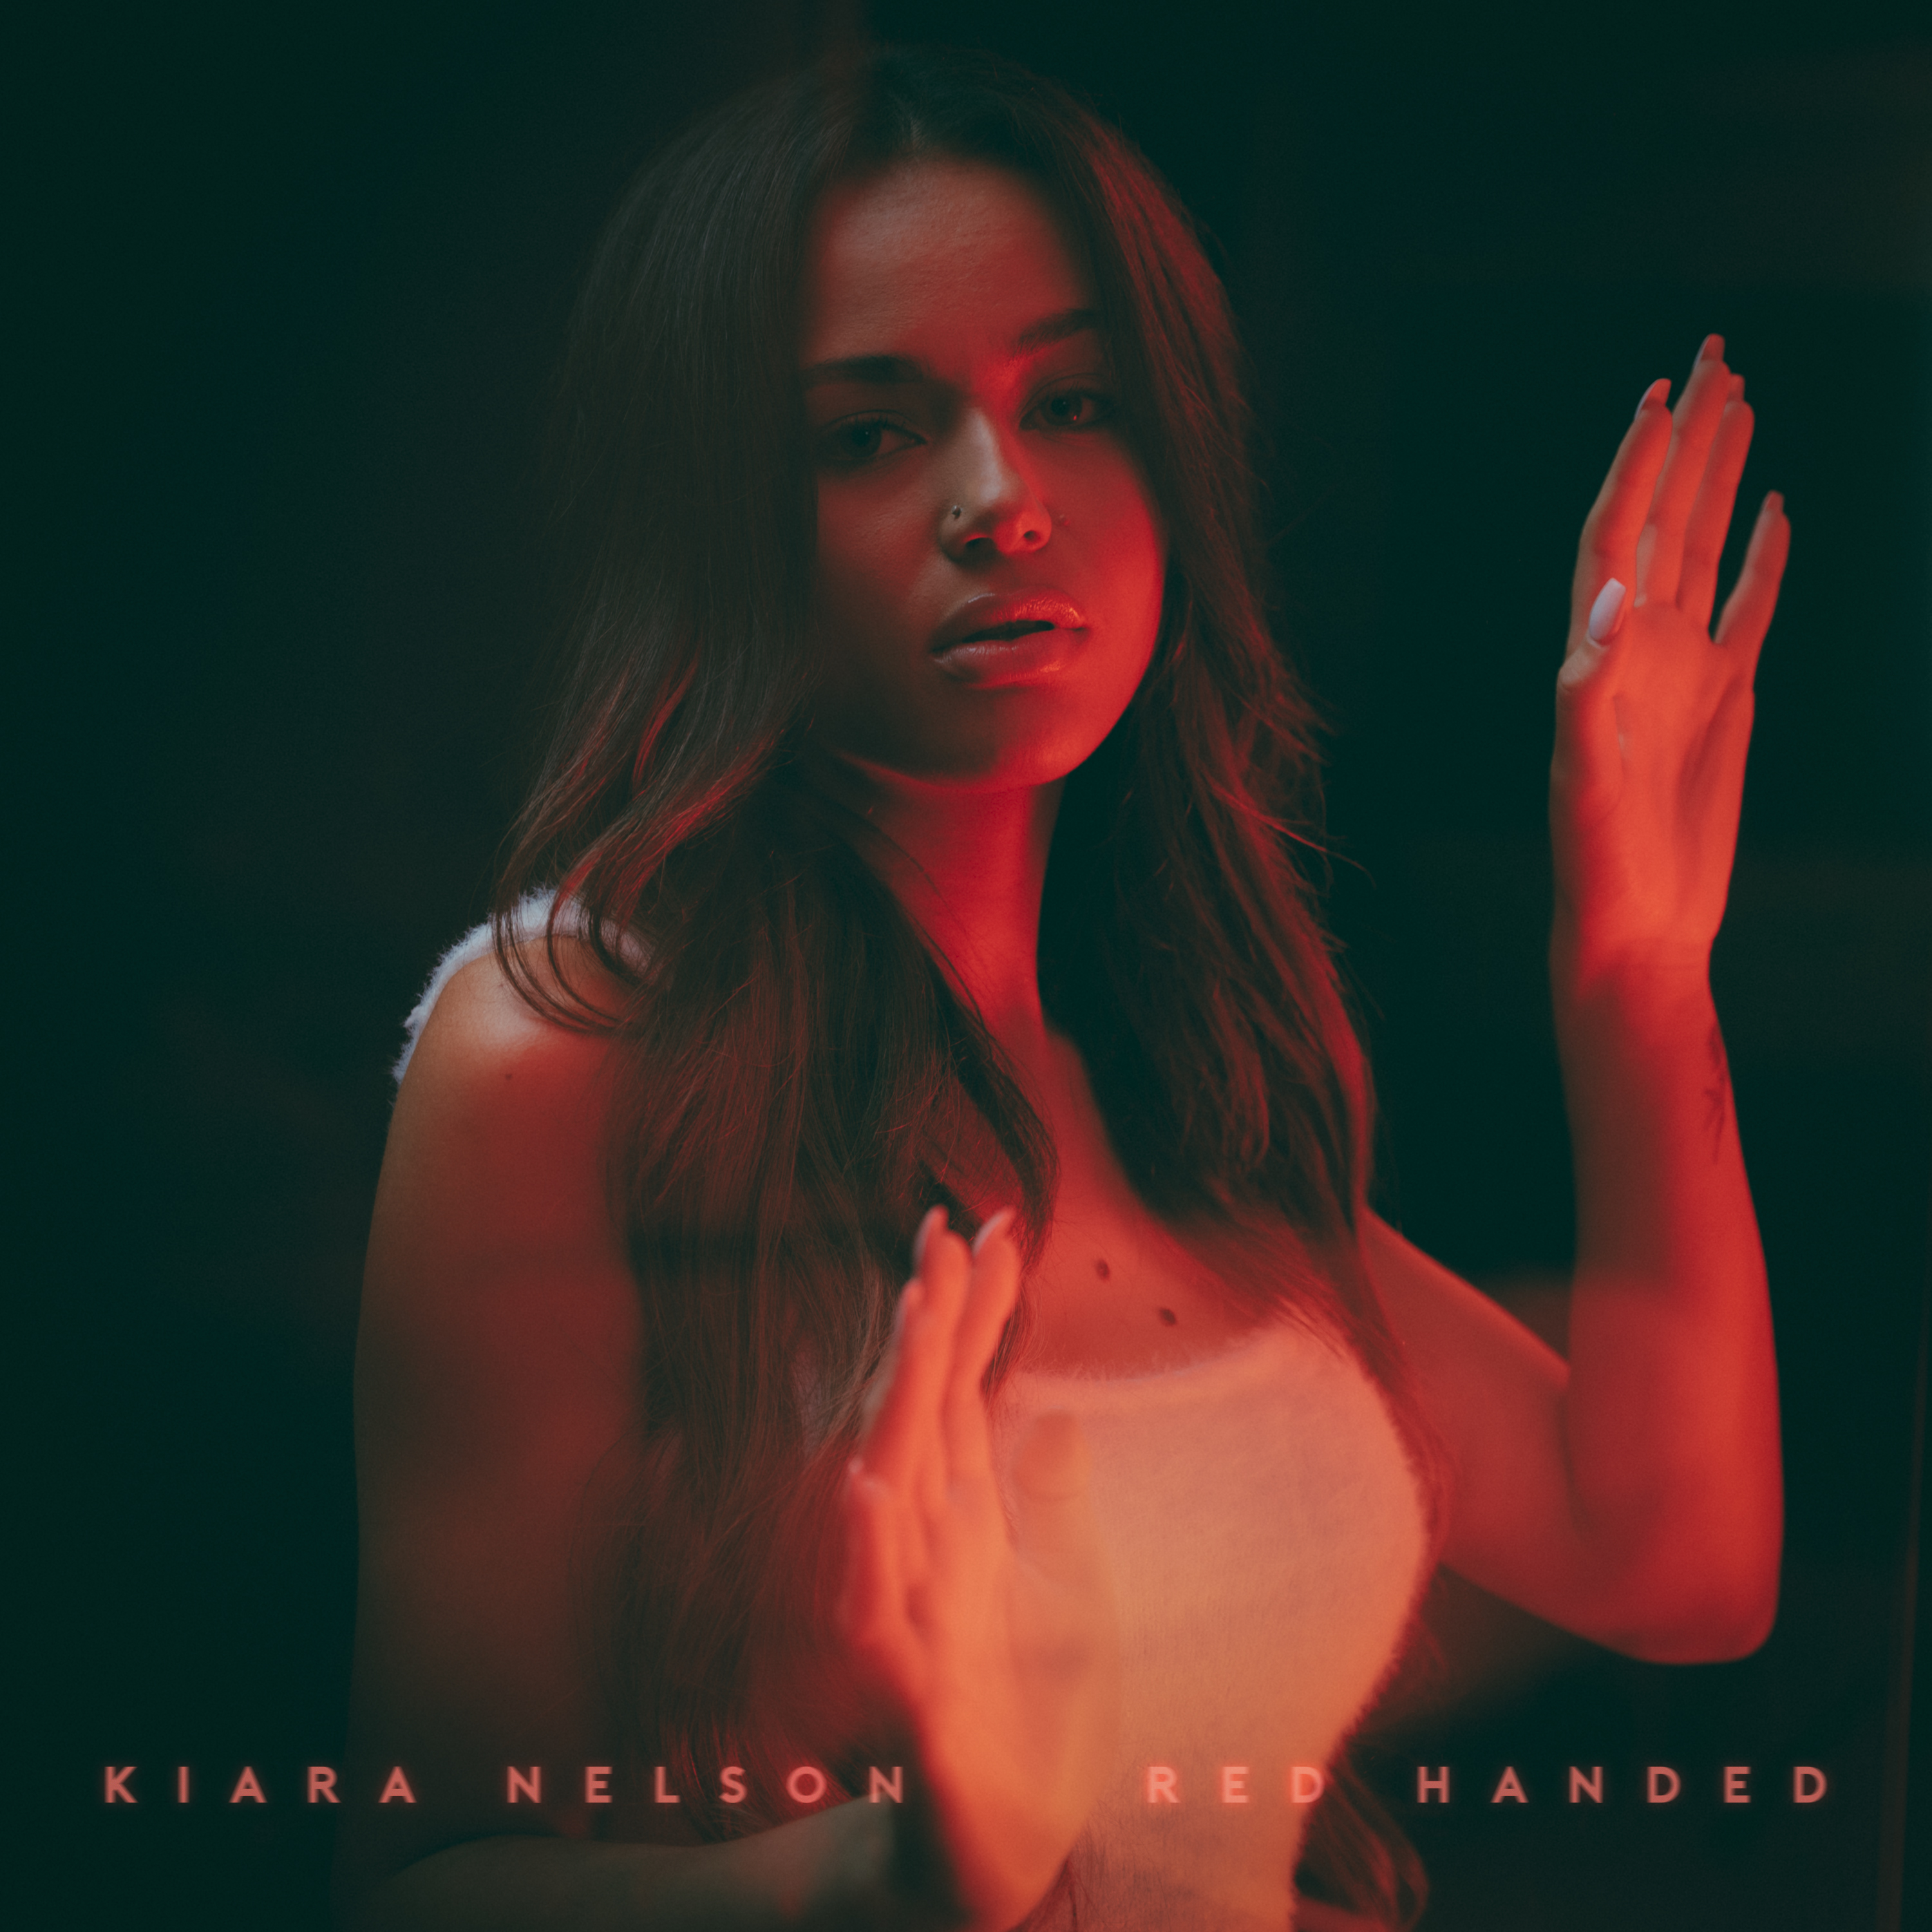 Red Handed (Single)